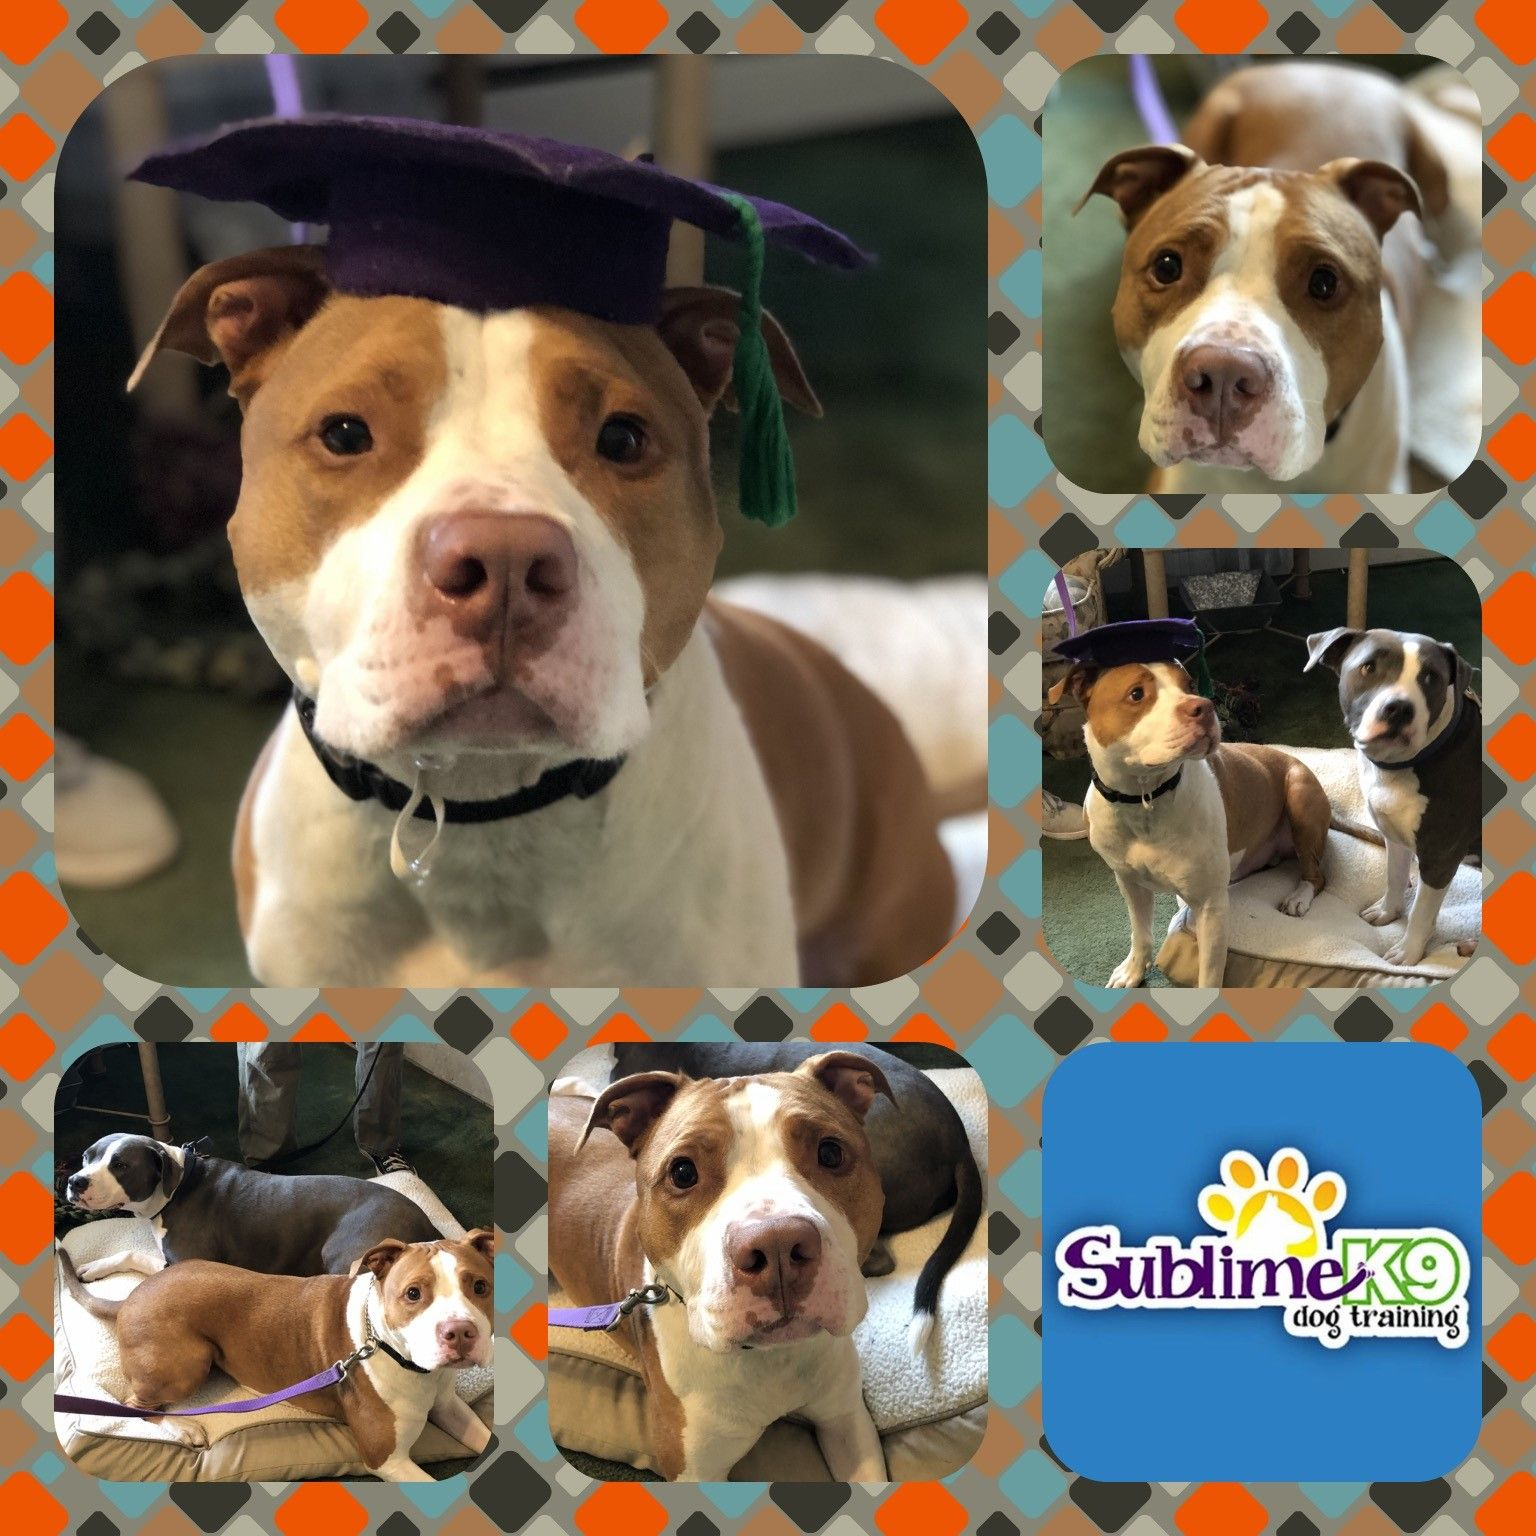 Long Island Dog Trainers Sublime K9 Dog Training Therapy Dogs